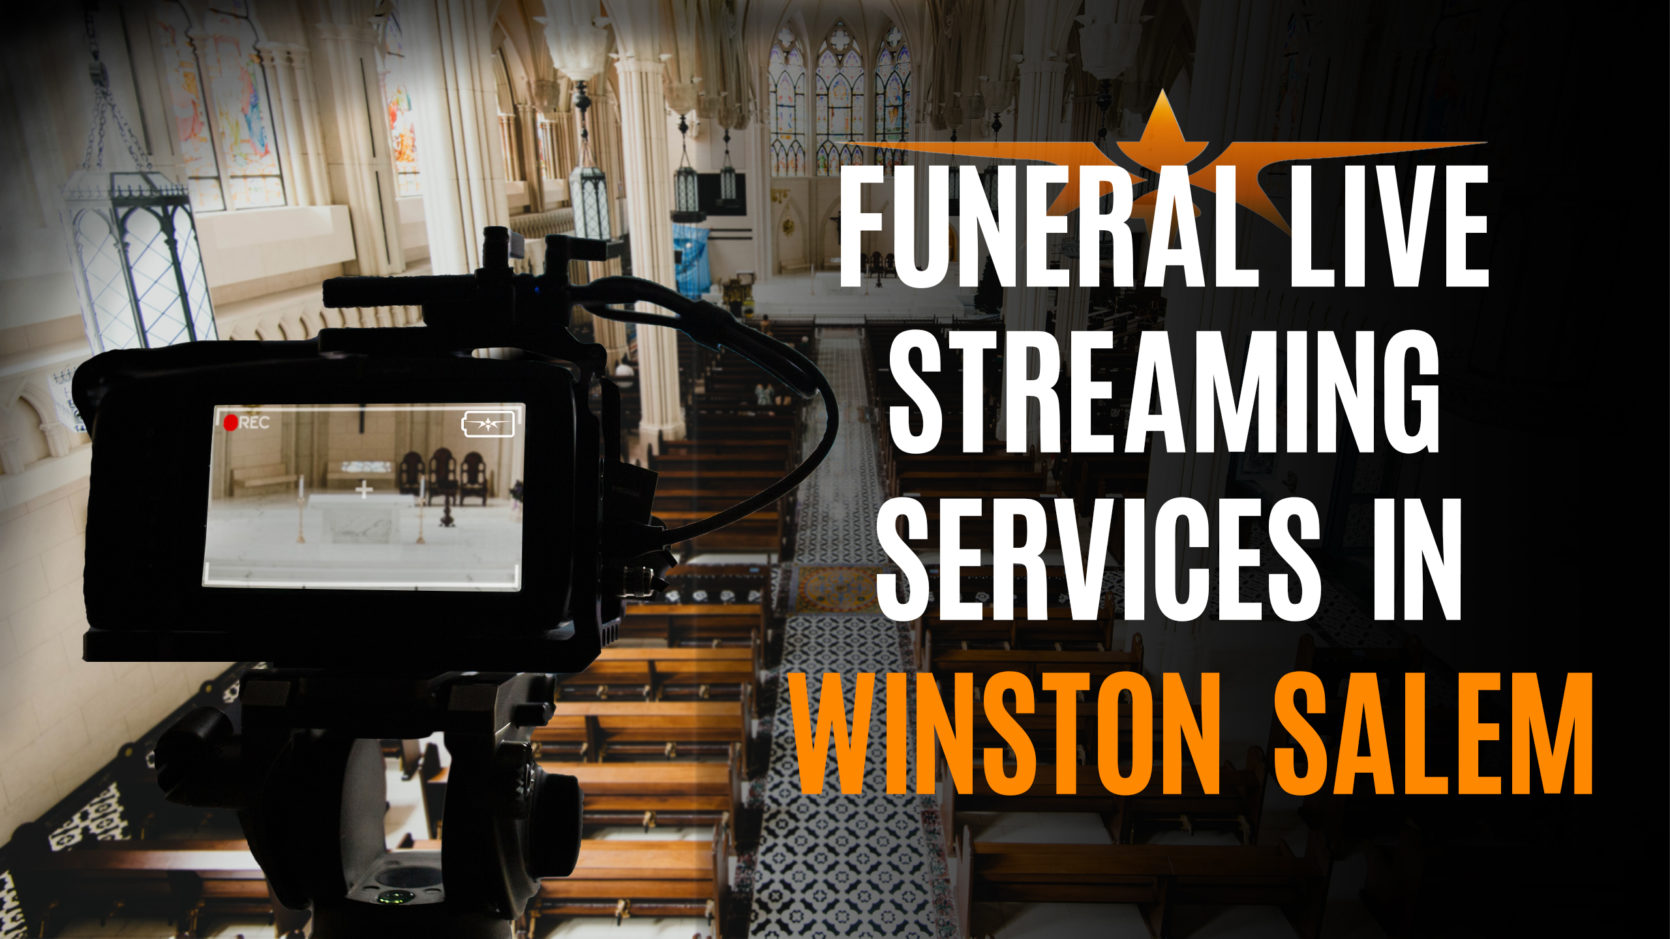 Funeral Live Streaming Services in Winston-Salem